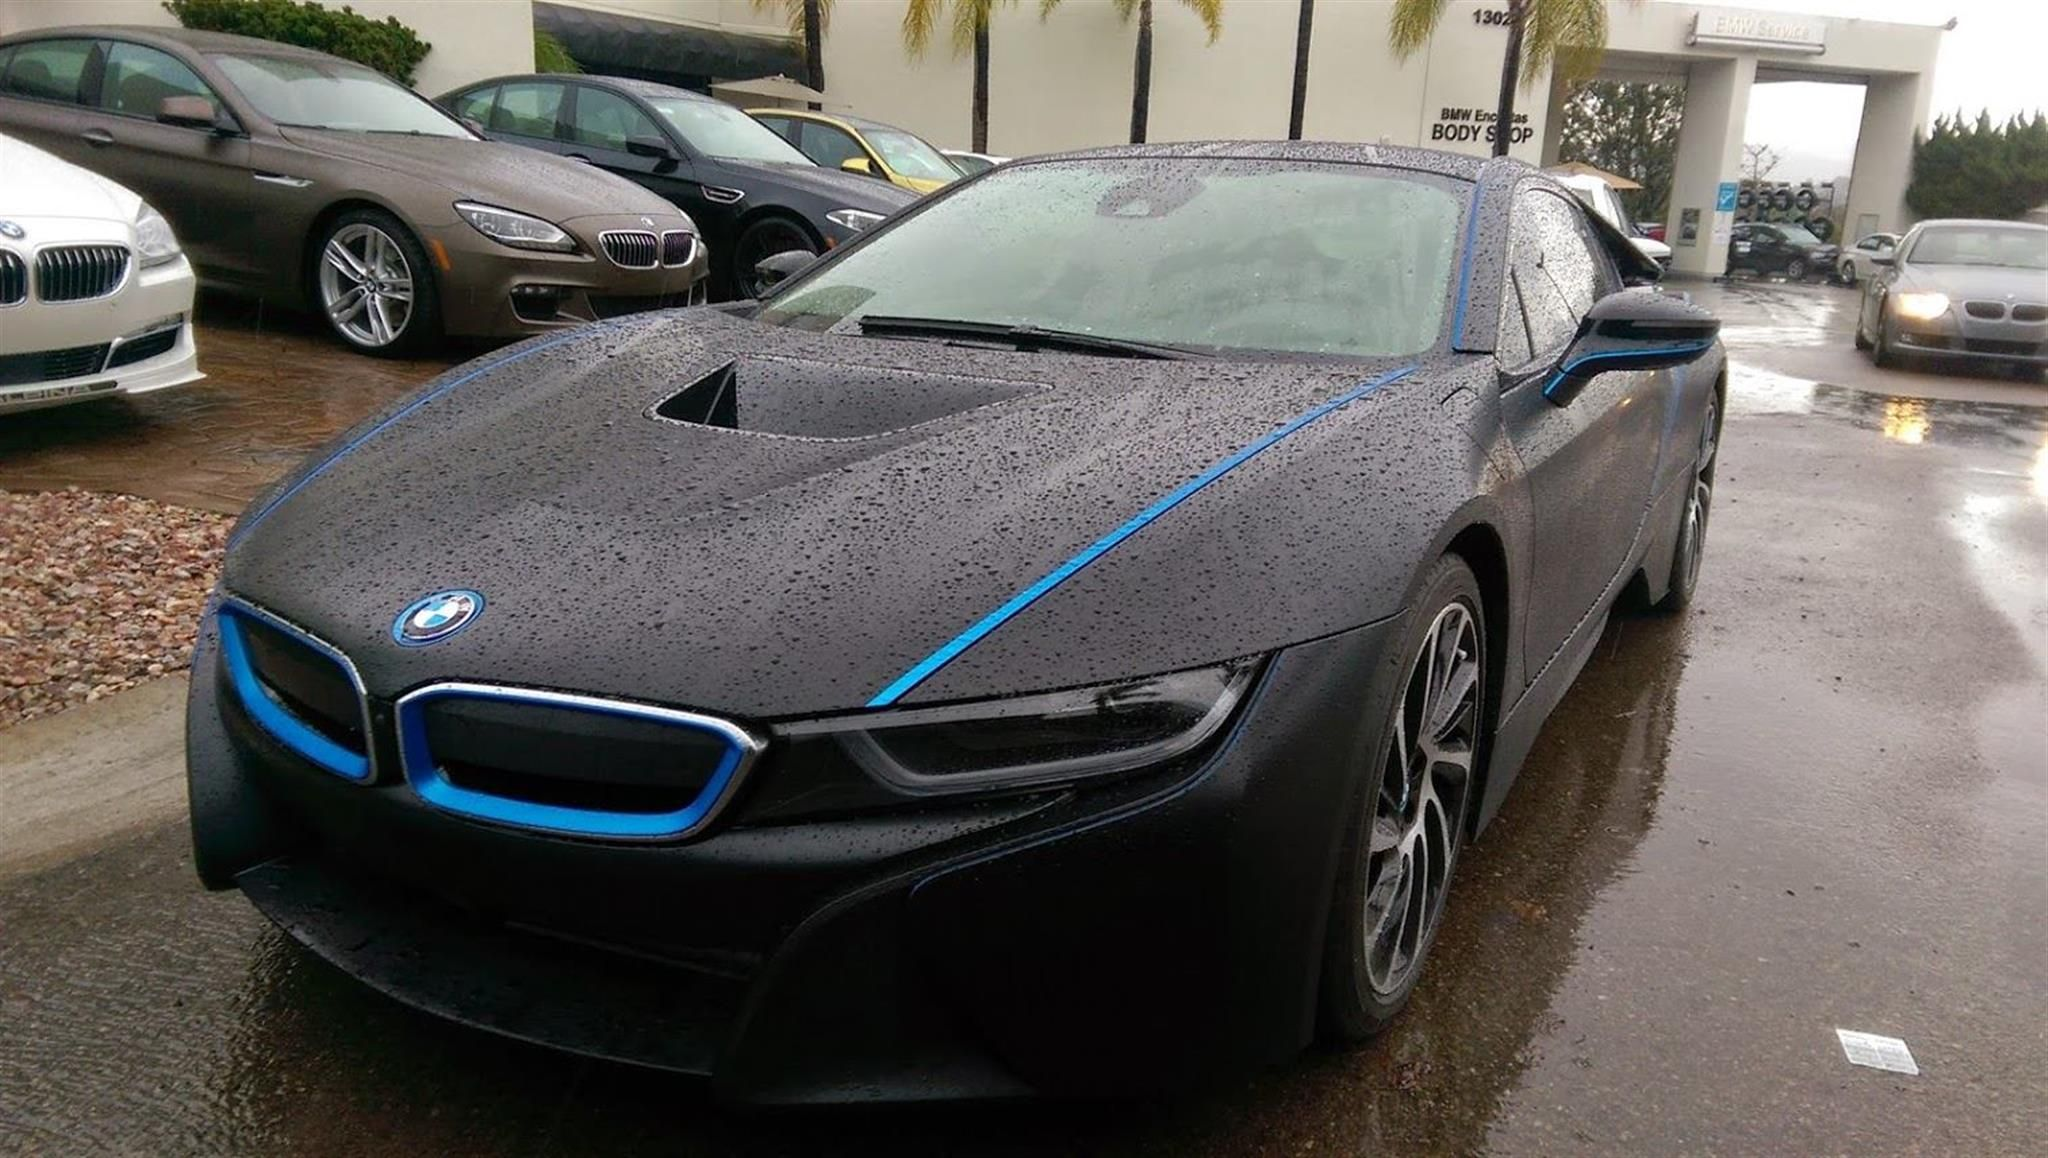 Bmw I8 Wrapped In Black By Bmw Encinitas In Encinitas Ca Click To